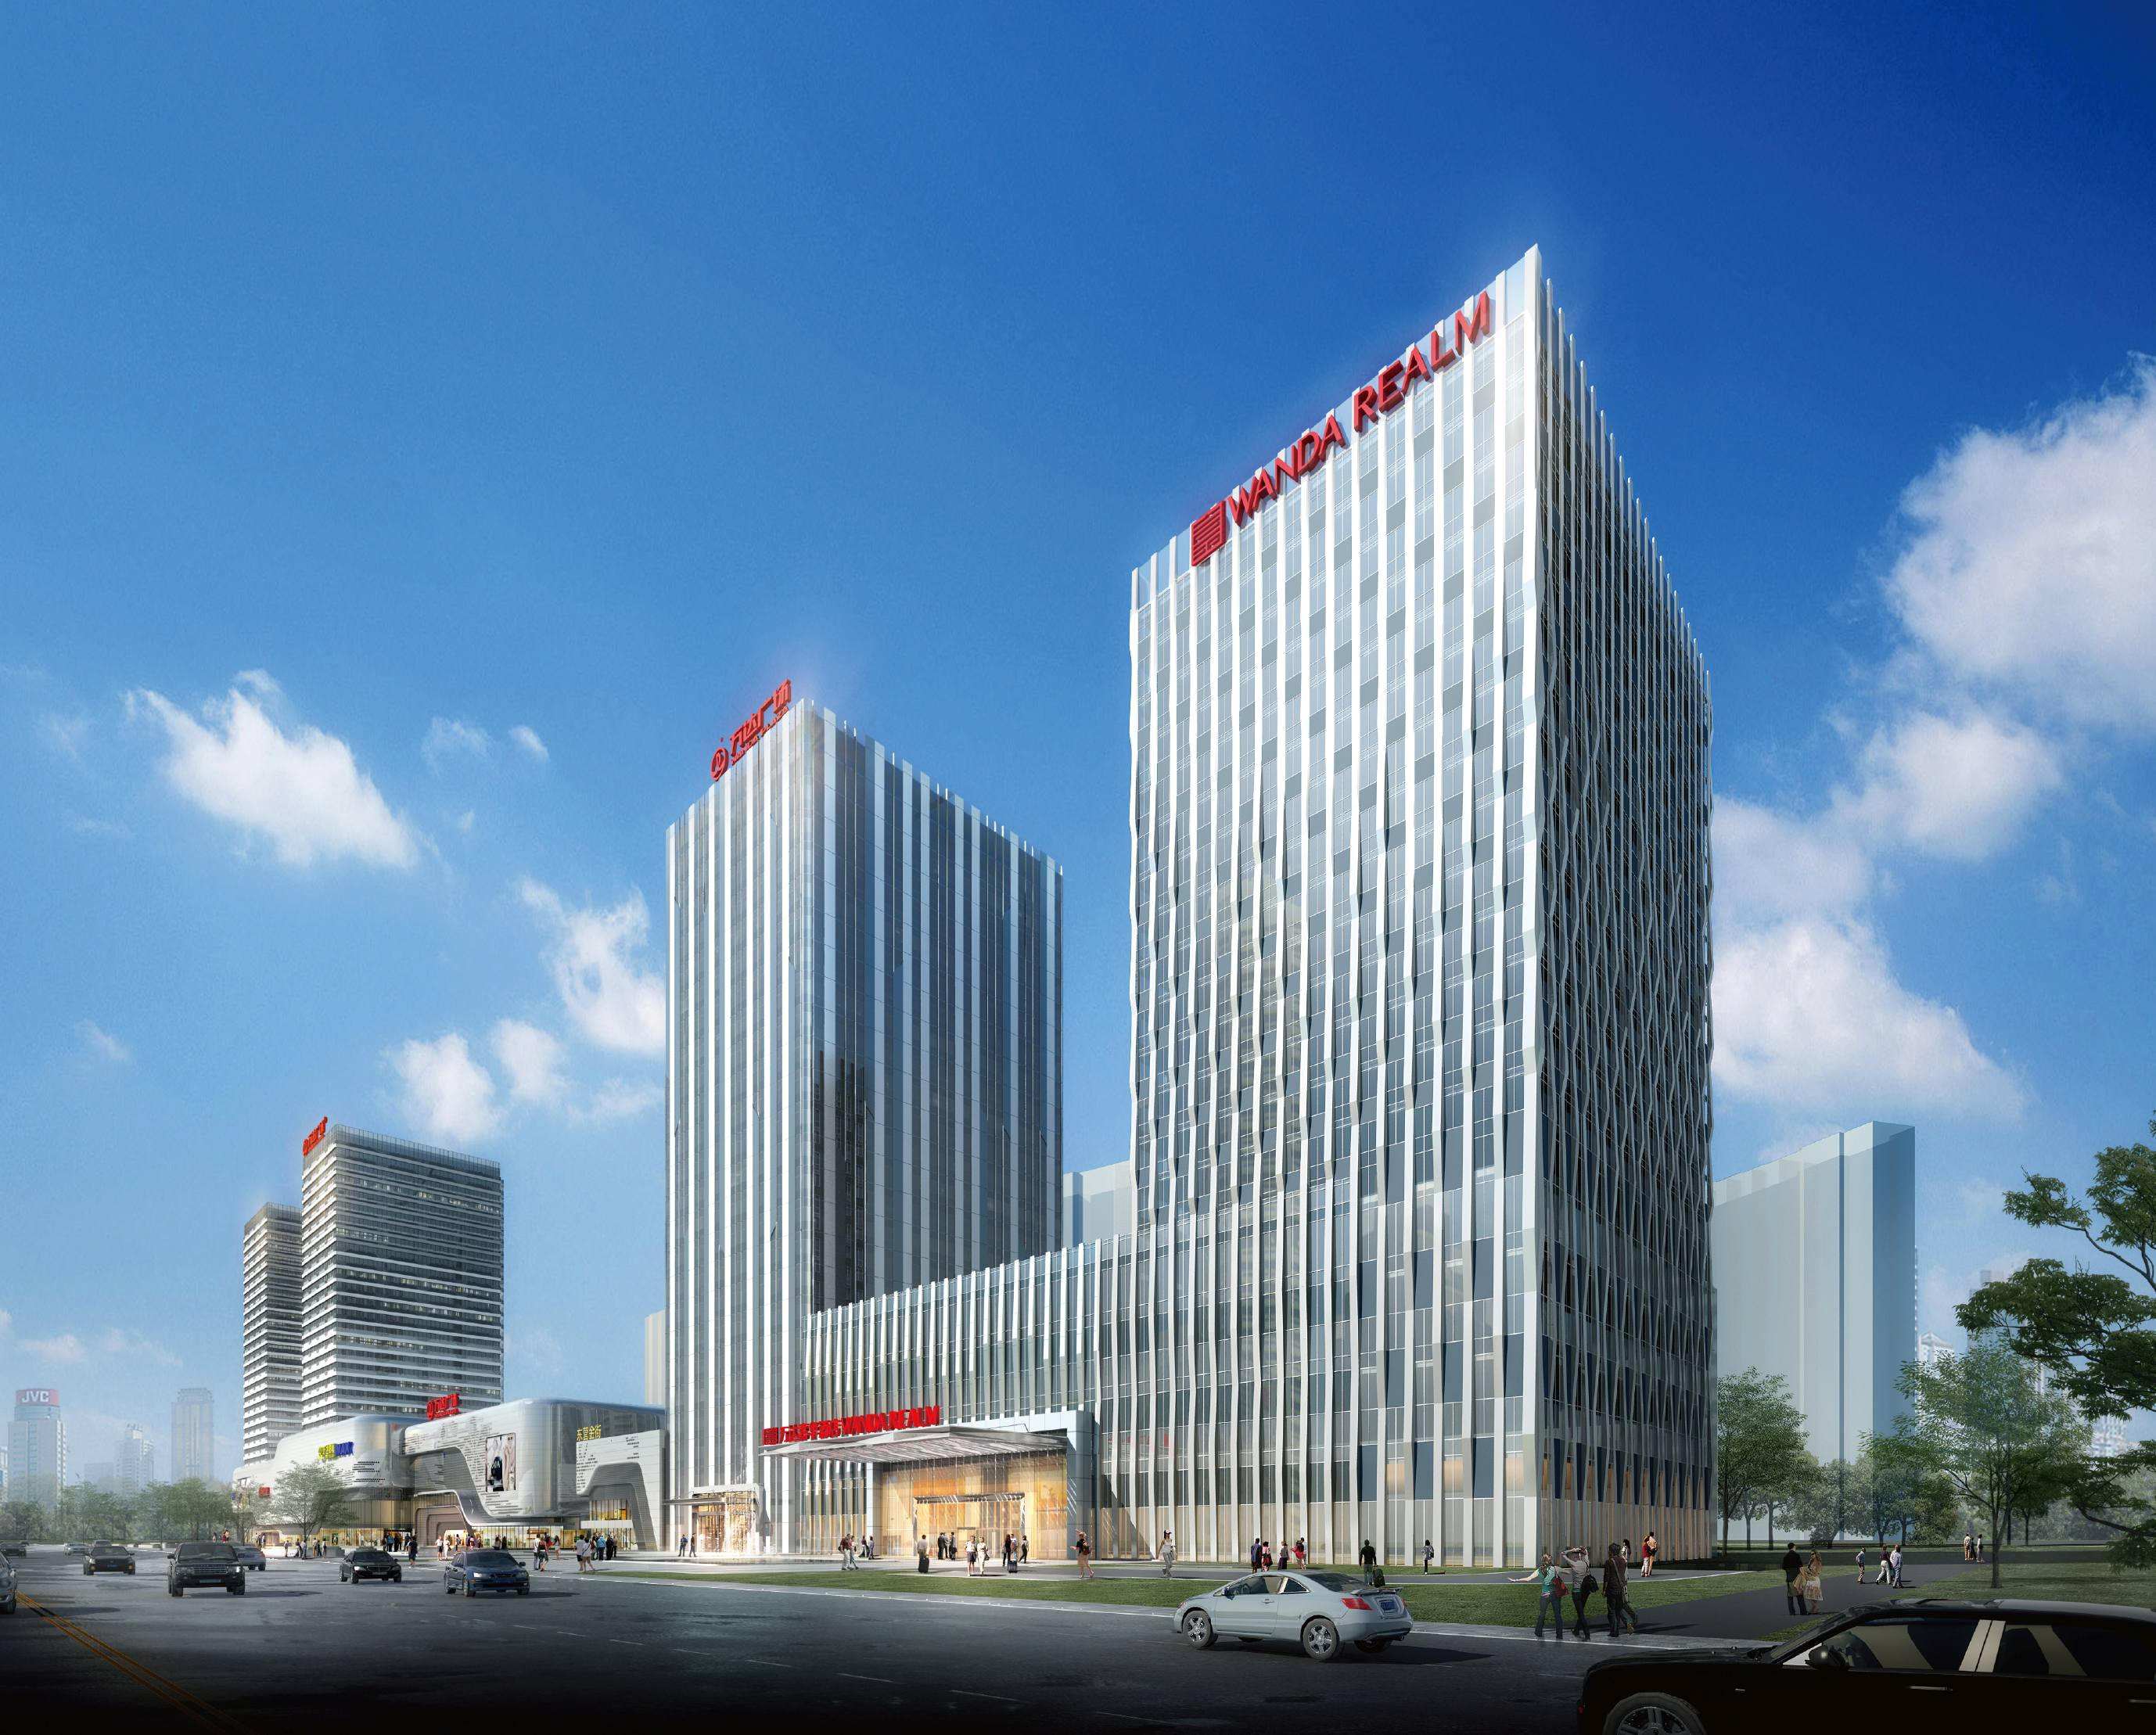 Dongying China  city photos gallery : Wanda Hotels & Resorts Opens 76th Hotel in Dongying, China